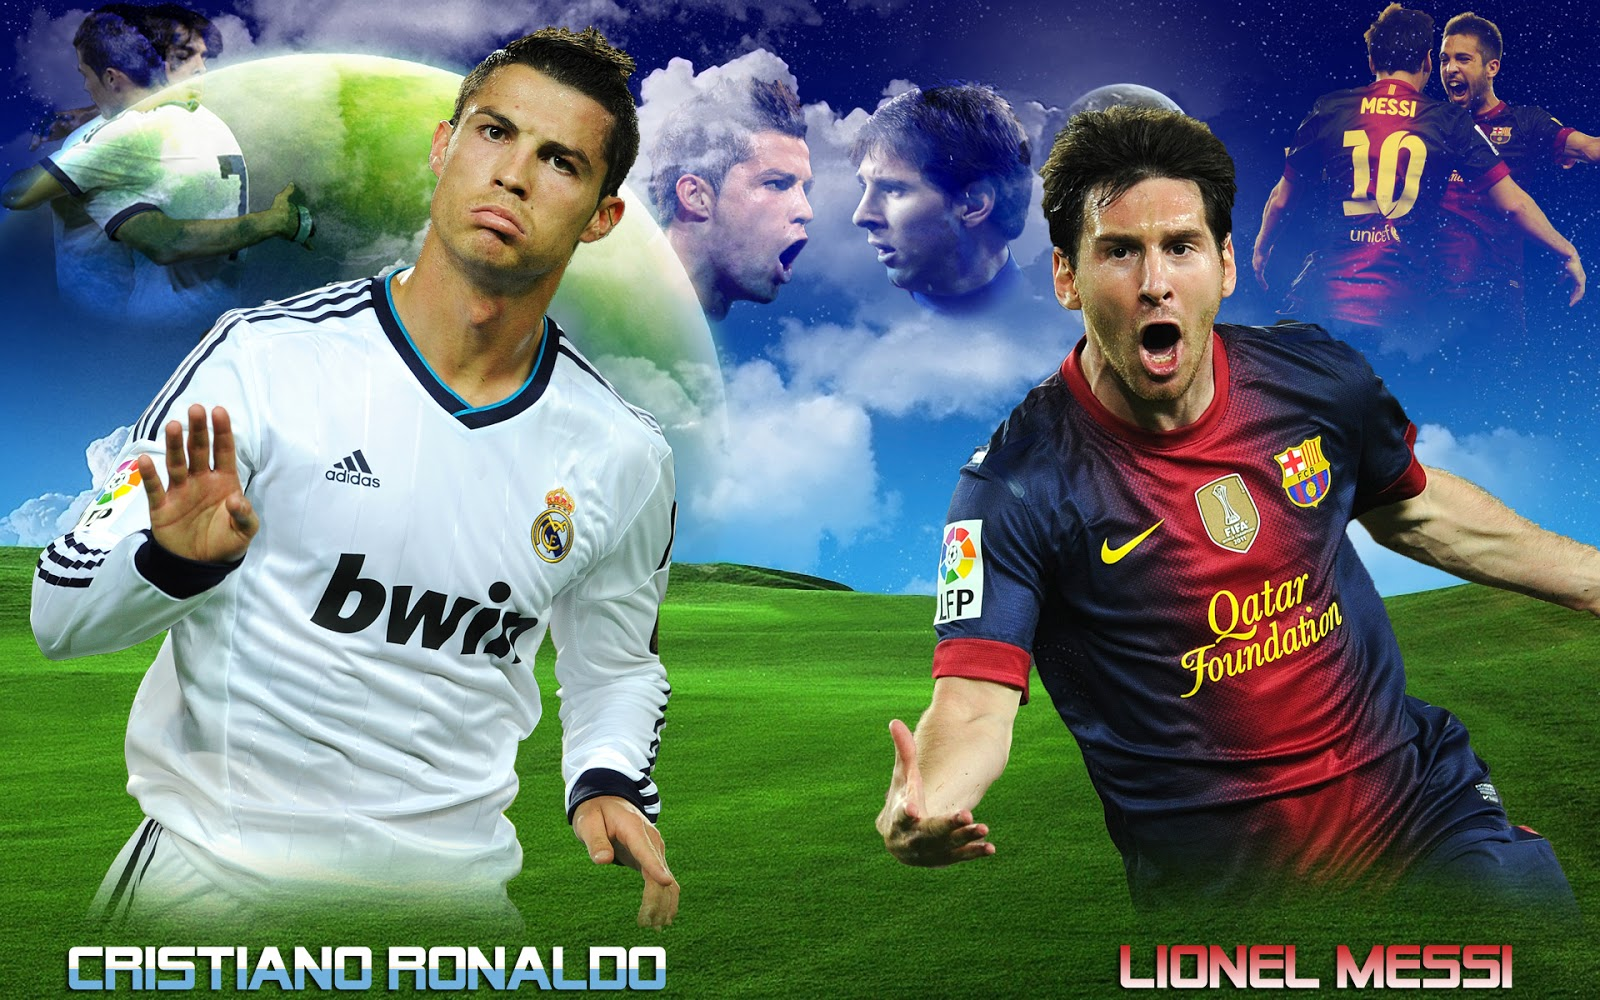 Football: Cristiano Ronaldo vs Lionel Messi New Nice hd Wallpapers ...